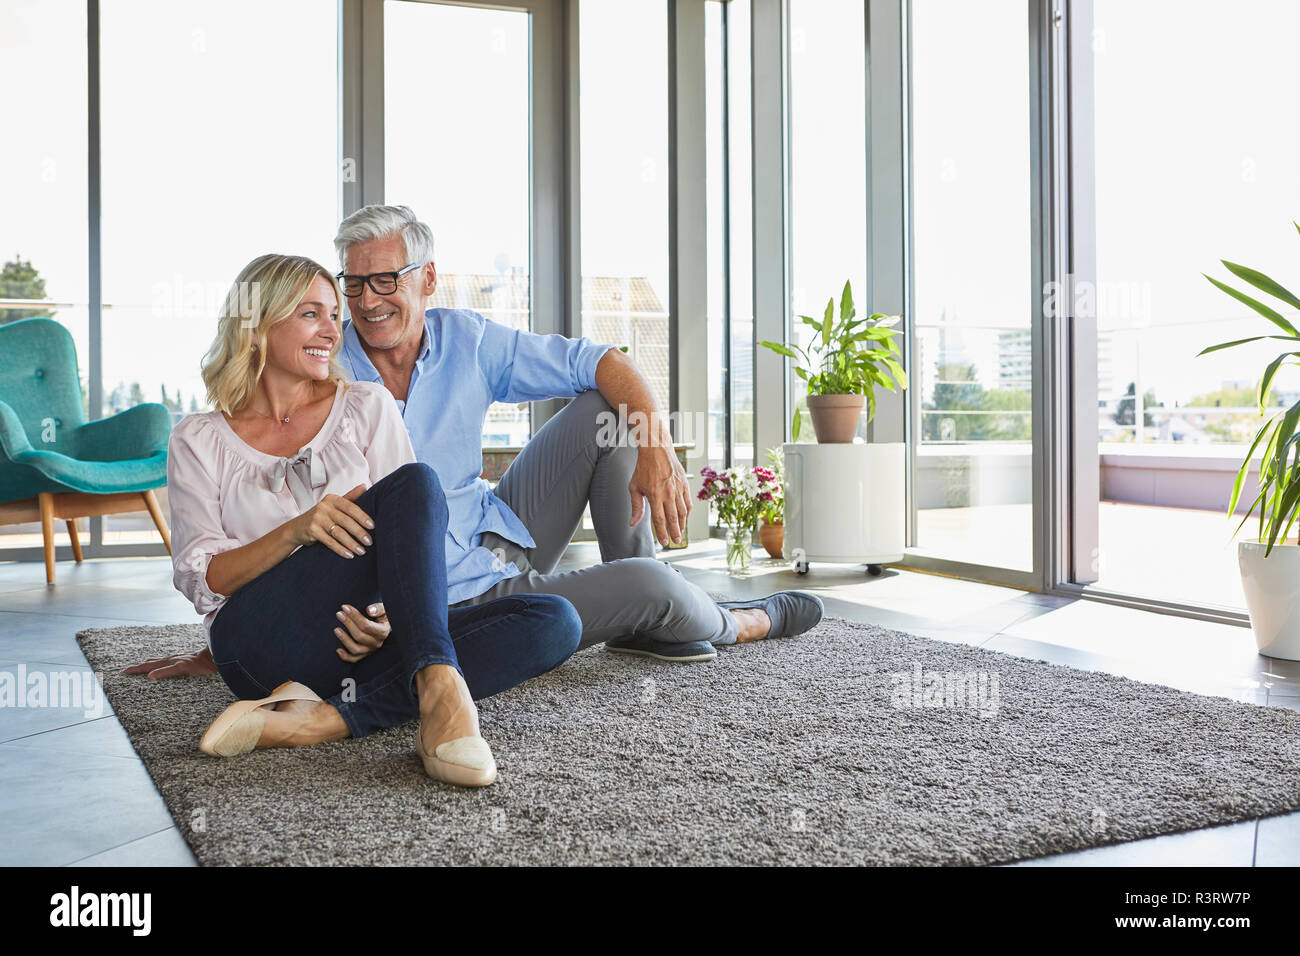 Smiling young couple relaxing at home Banque D'Images